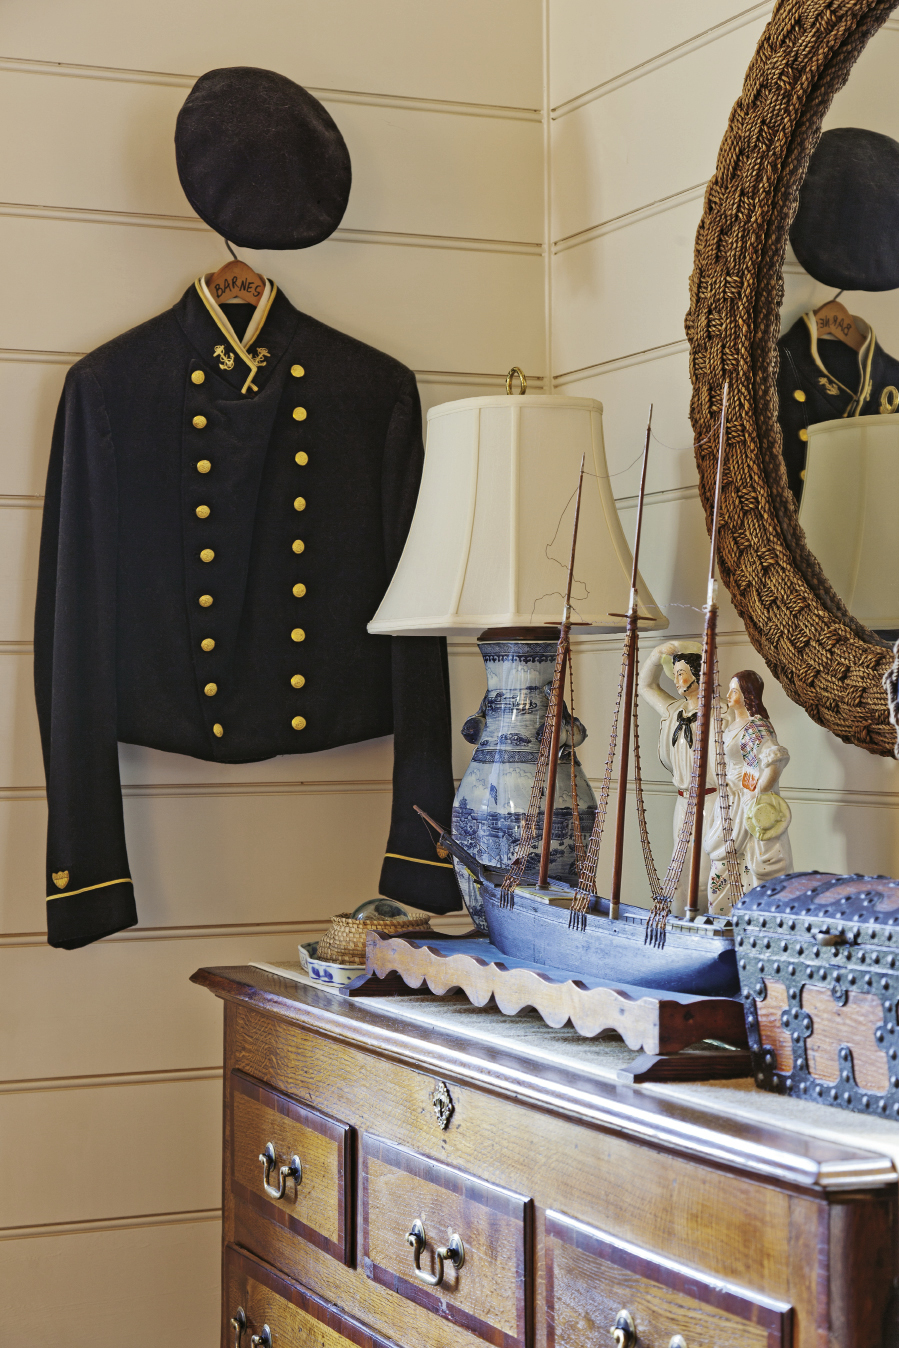 An antique seafarer's uniform graces the second-floor bedroom.